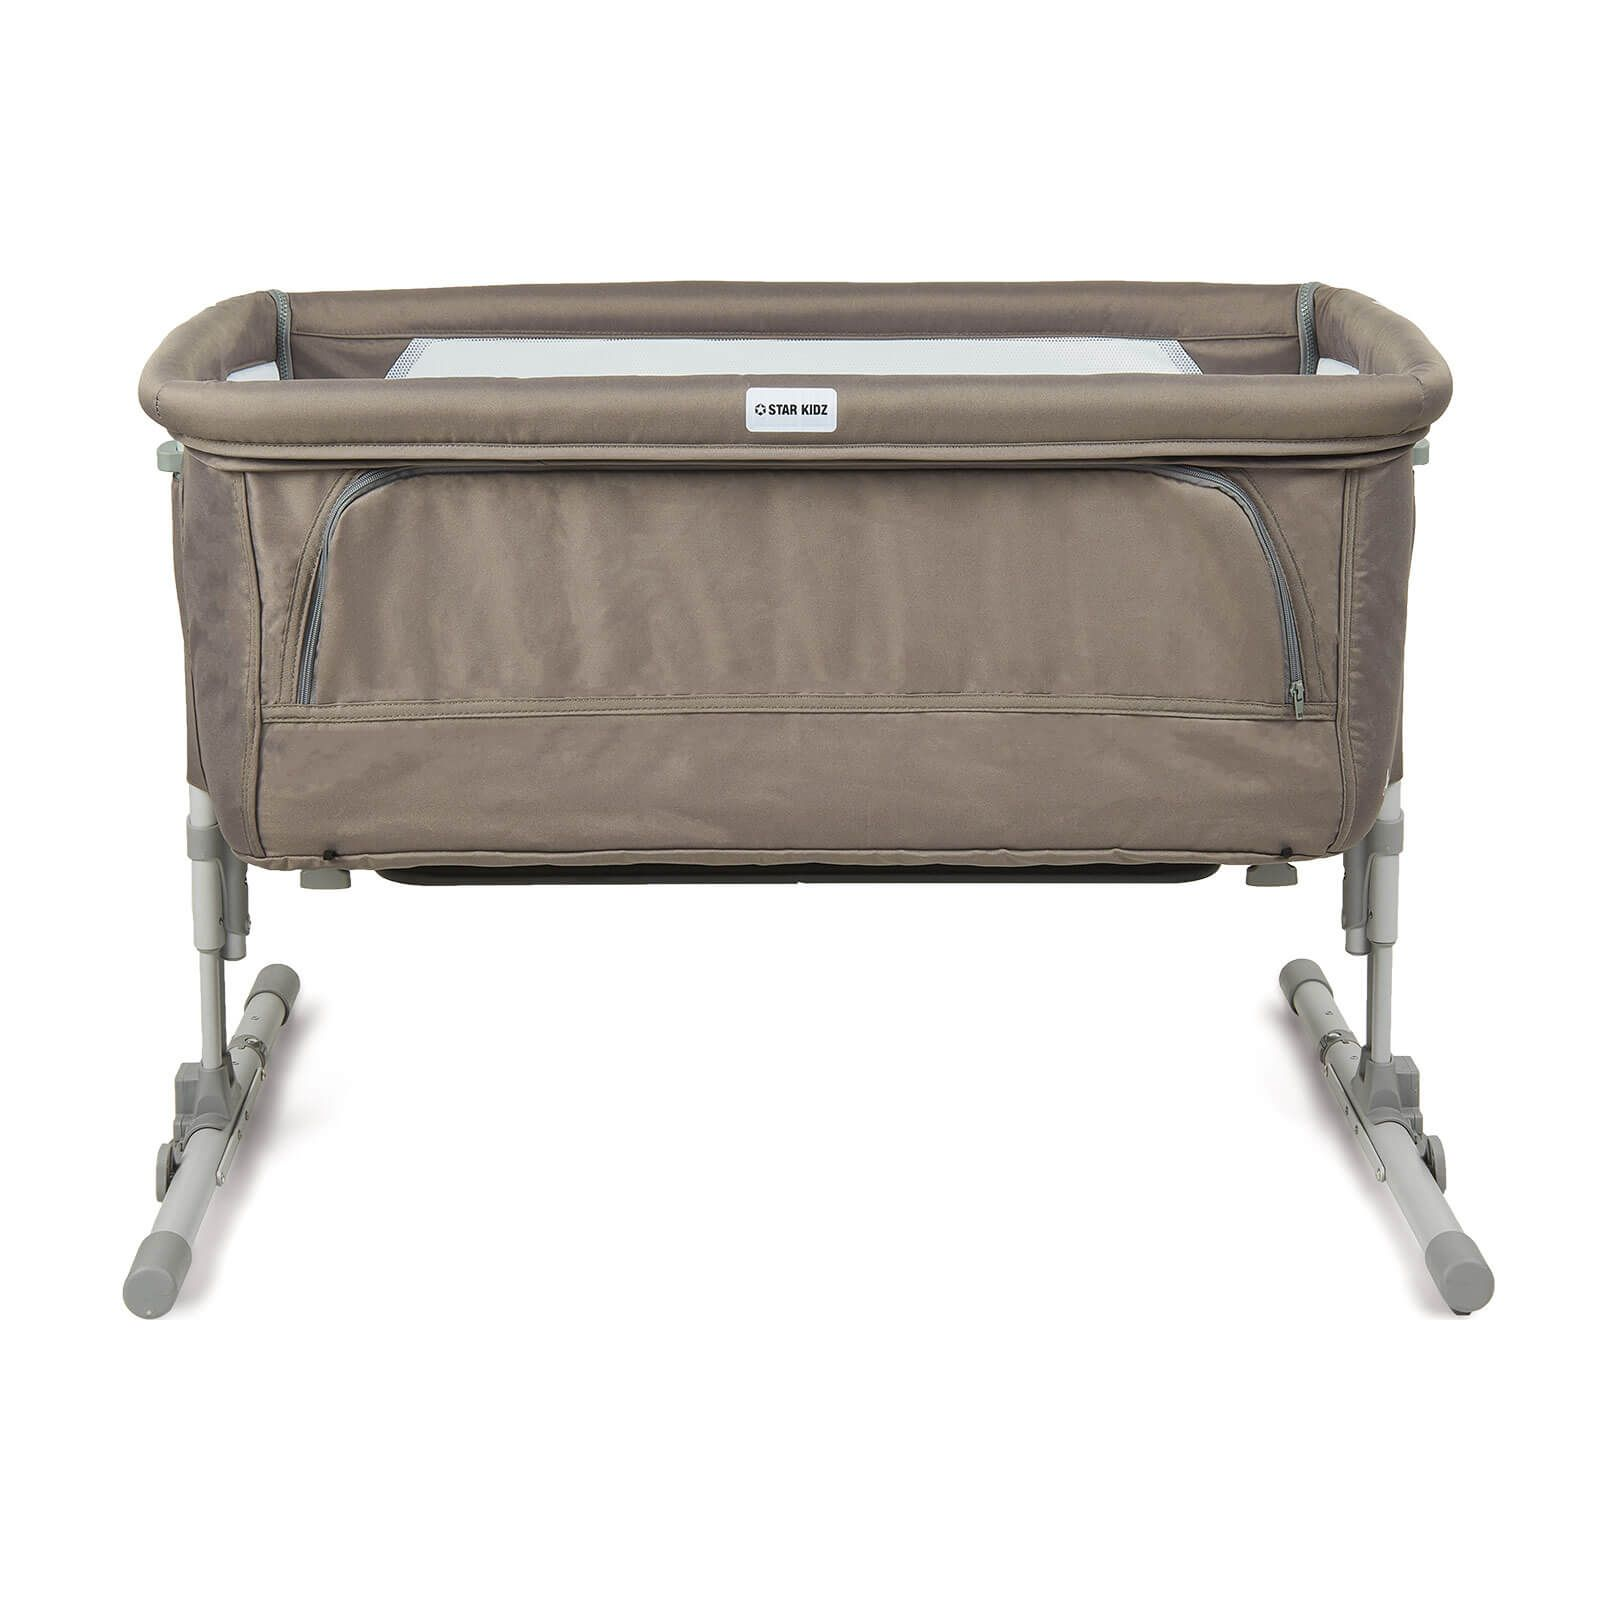 Newborn Bassinet Reflux Anti Reflux Base Positioning Is Used To Help With Comforting